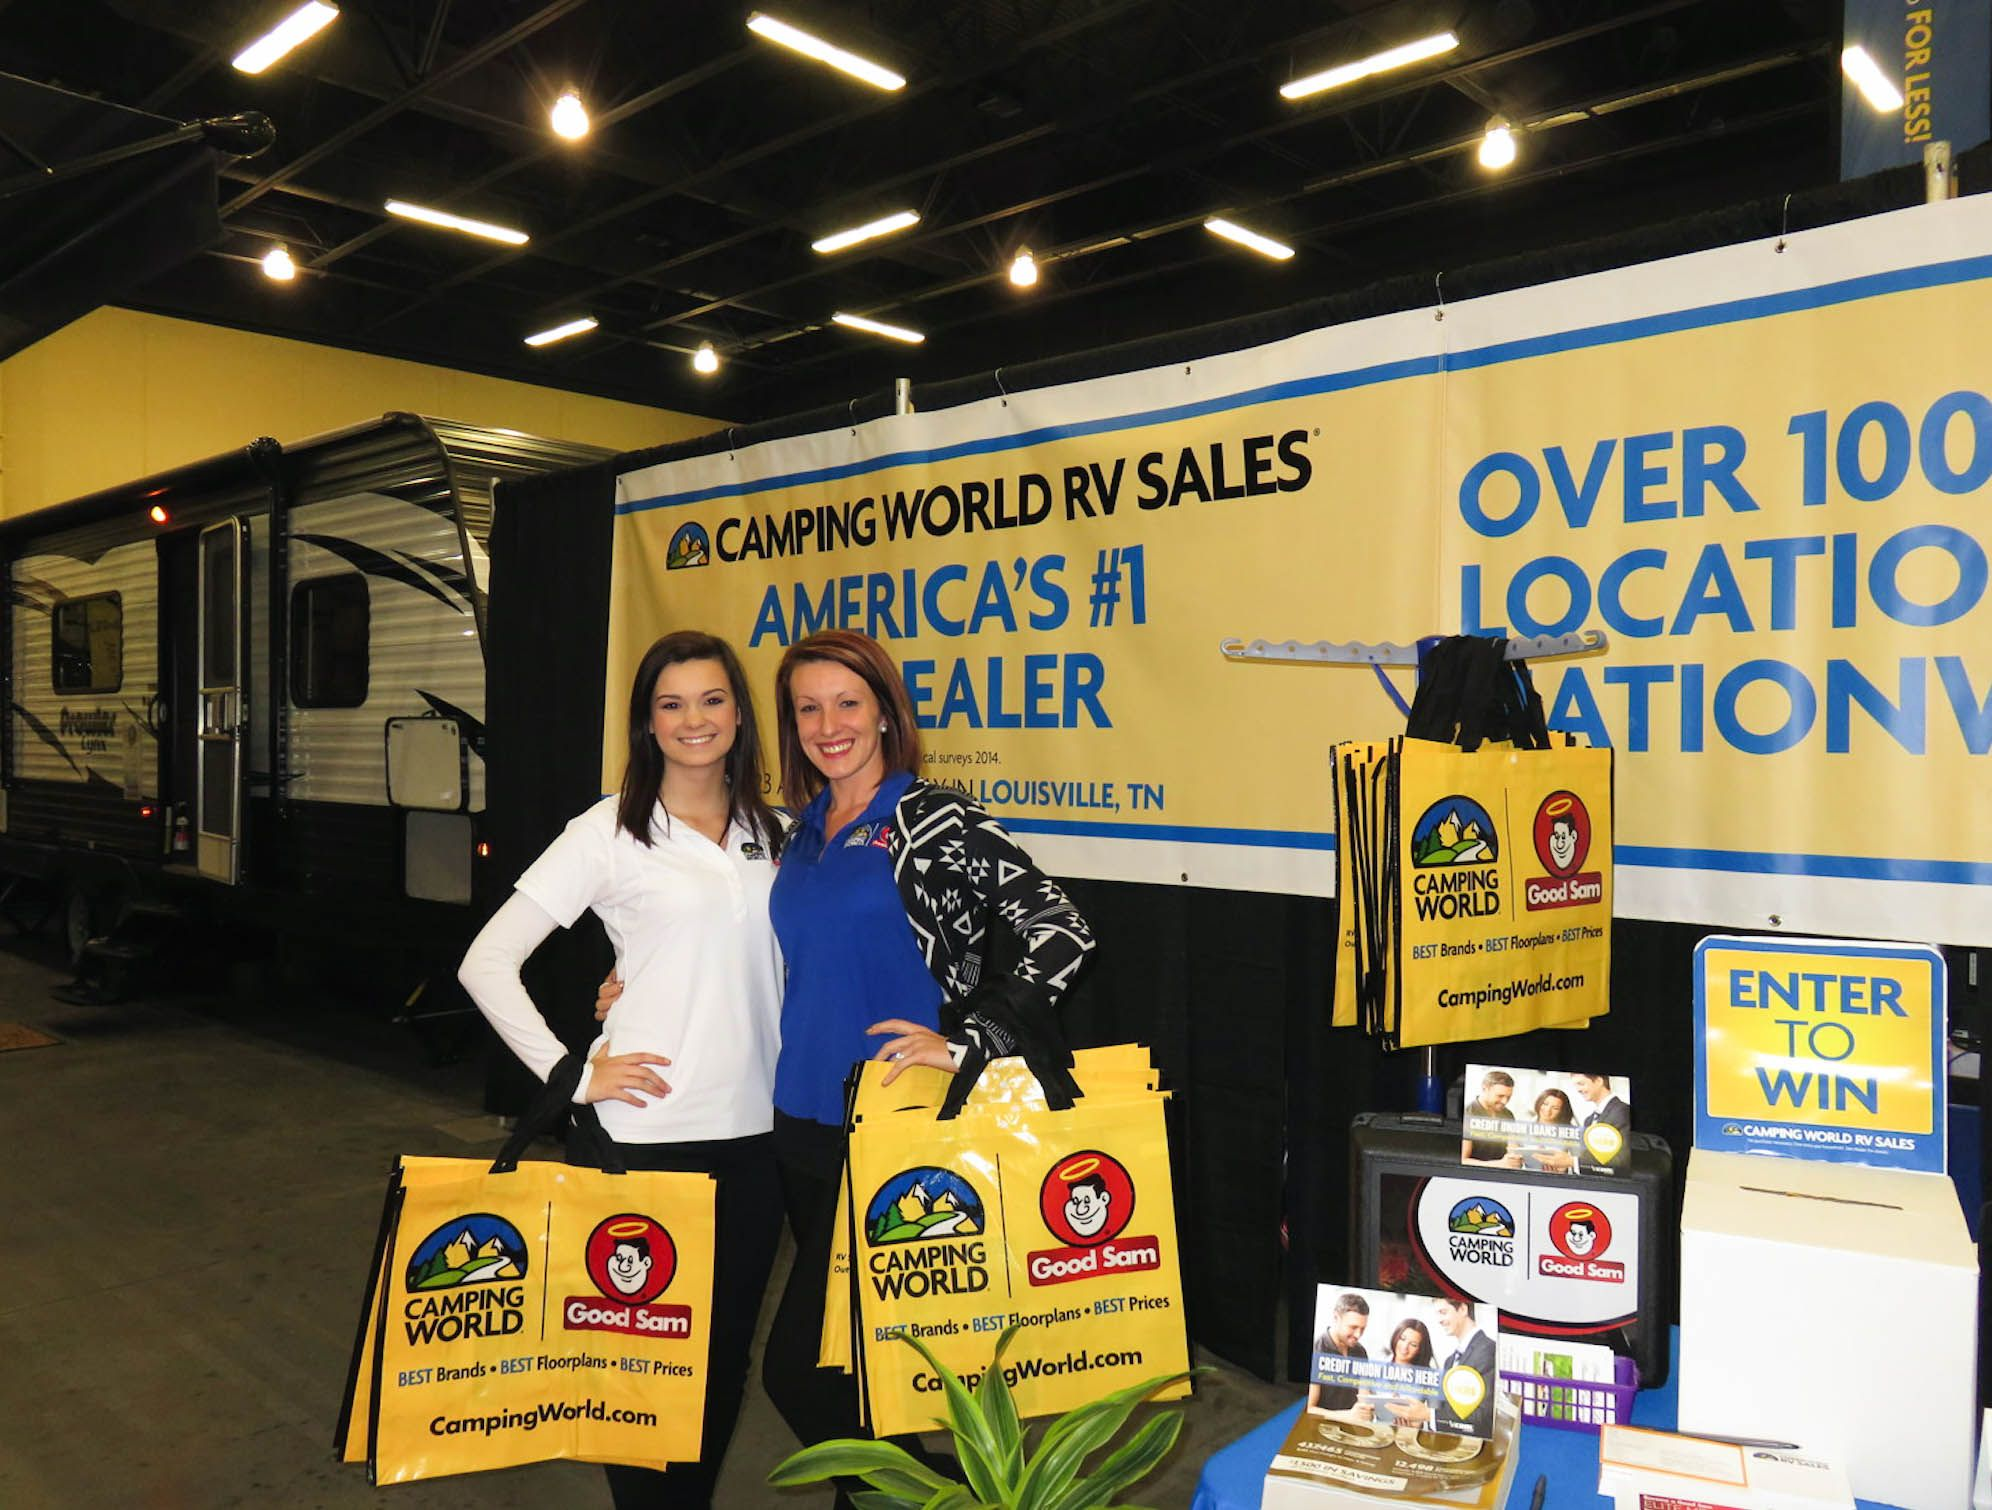 Camping world is ready to show your next heartland rv